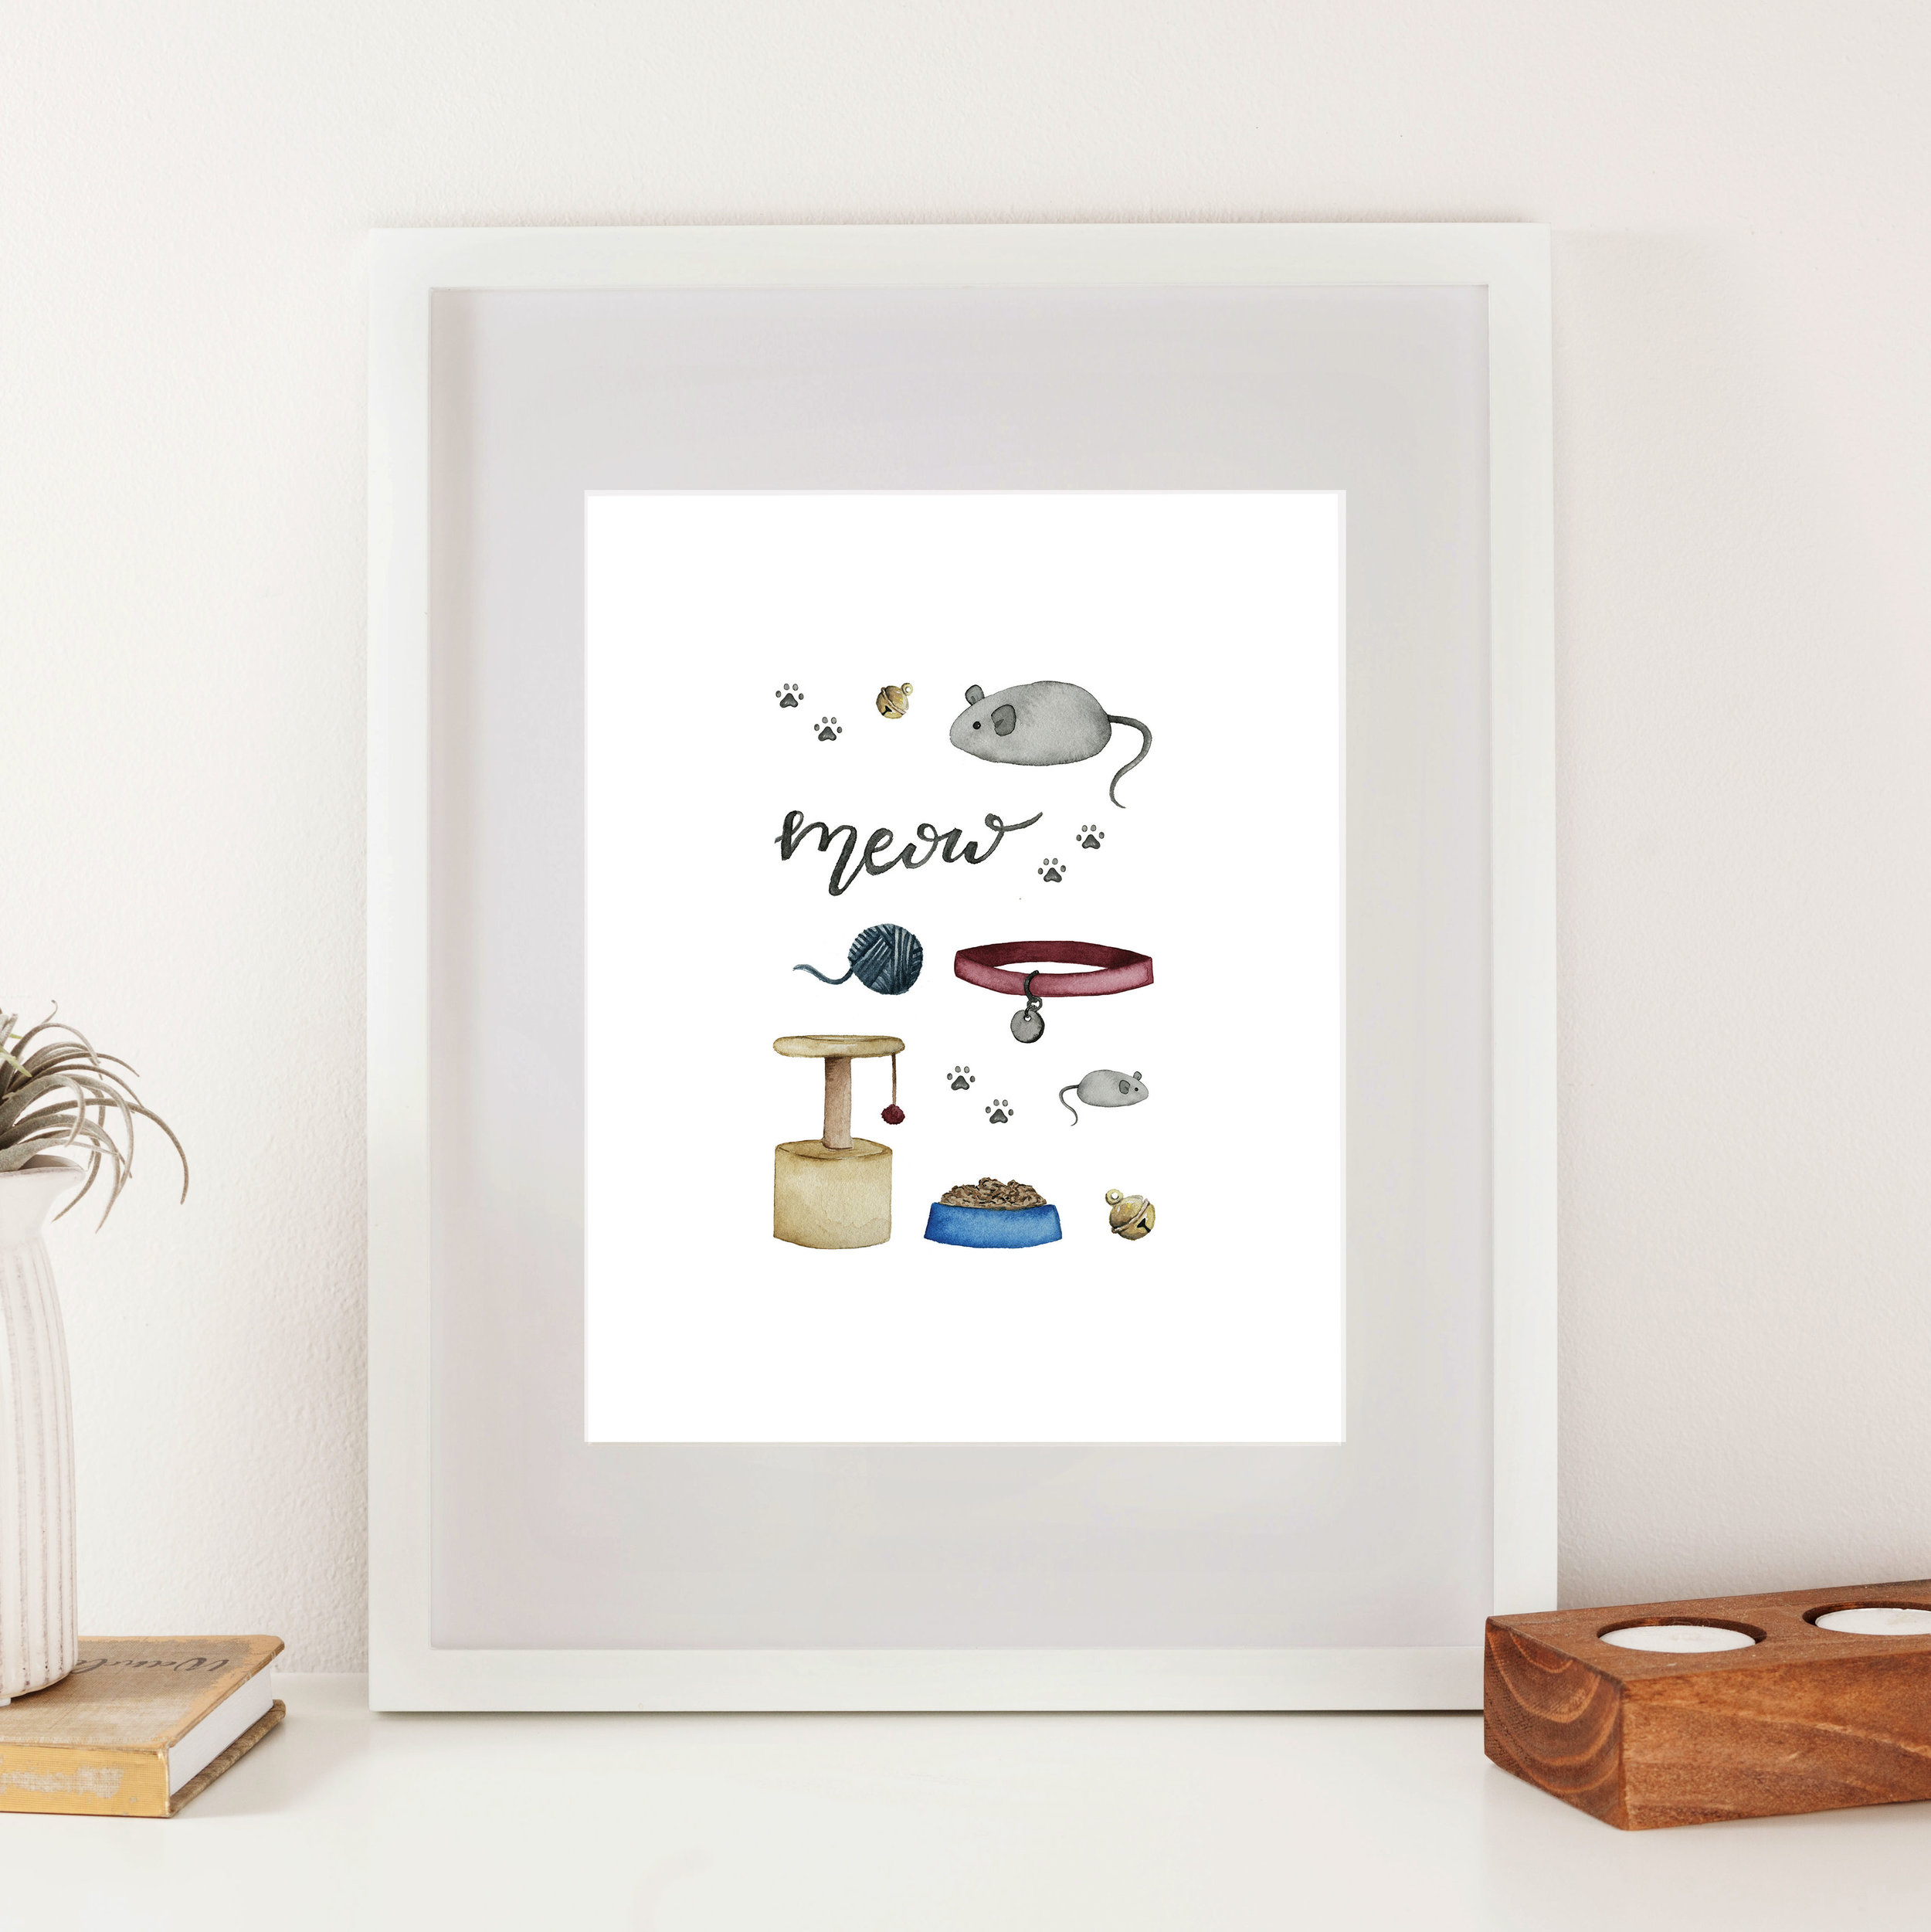 Cat Accessories Print - Starting at $24.00